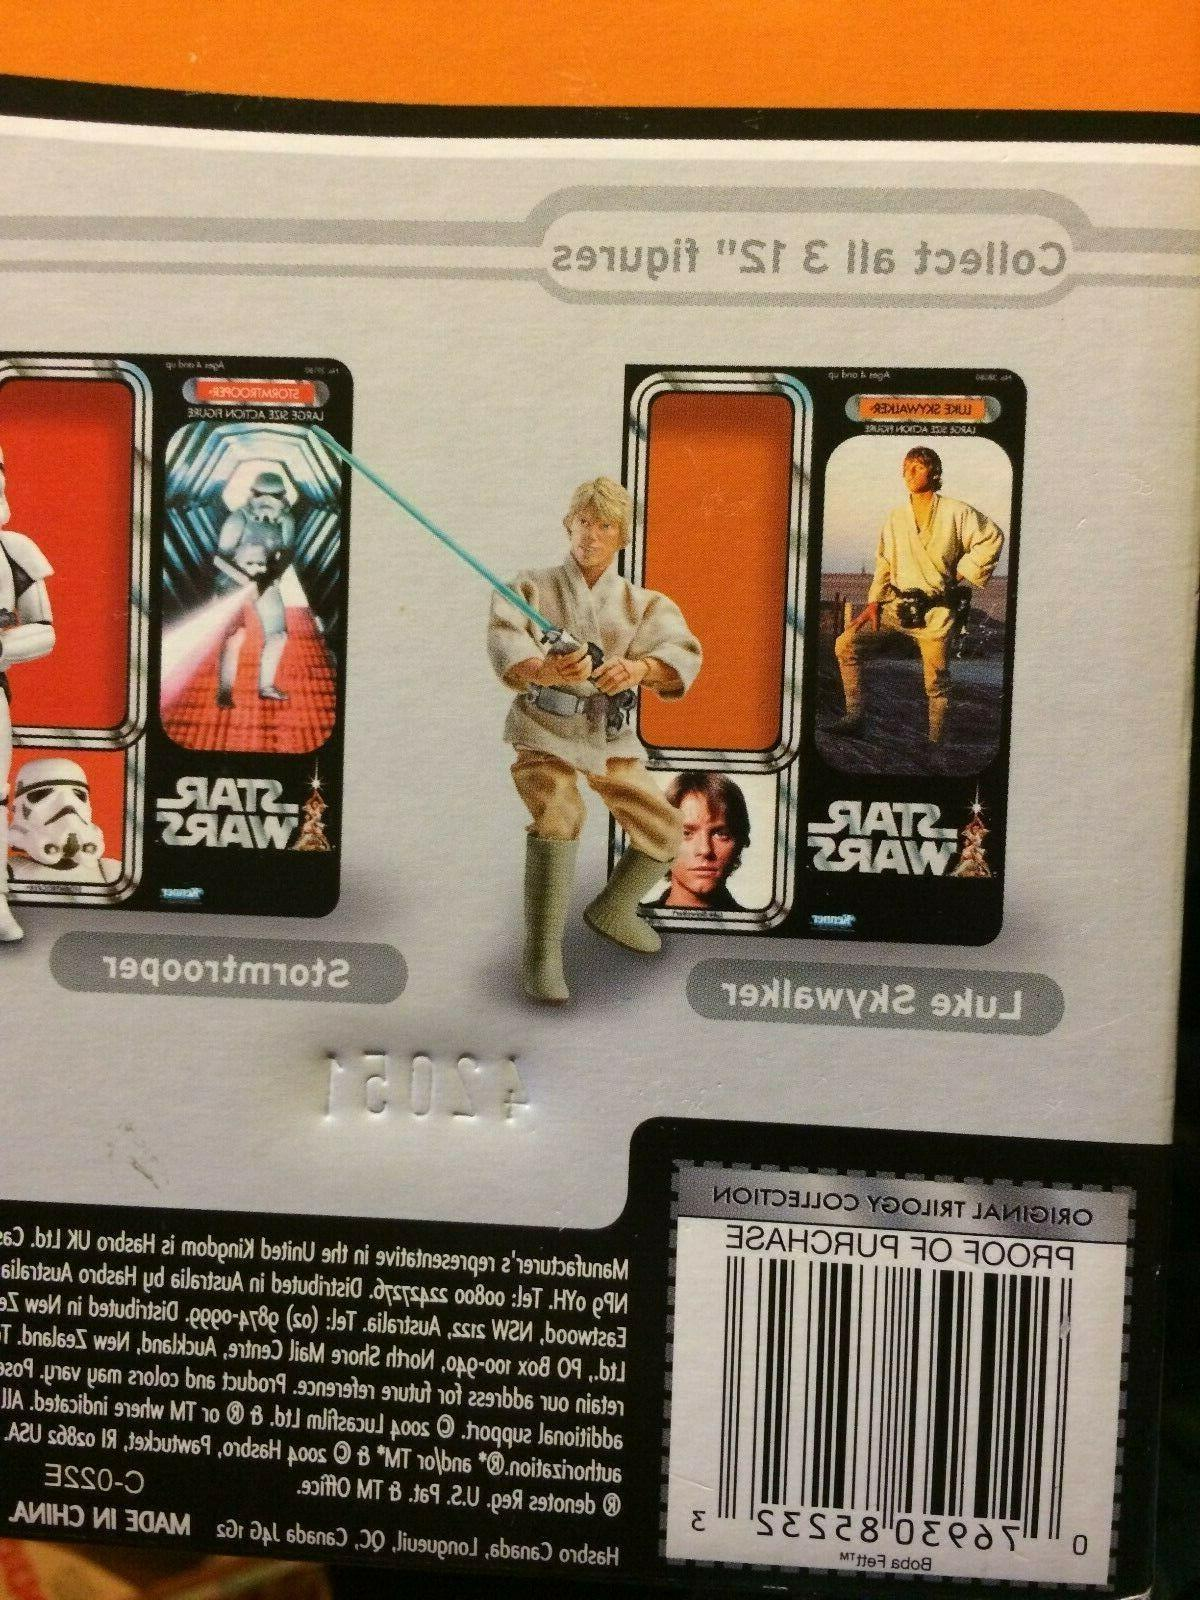 STAR INCH THE ORIGINAL TRILOGY COLLECTION BOBA Mint